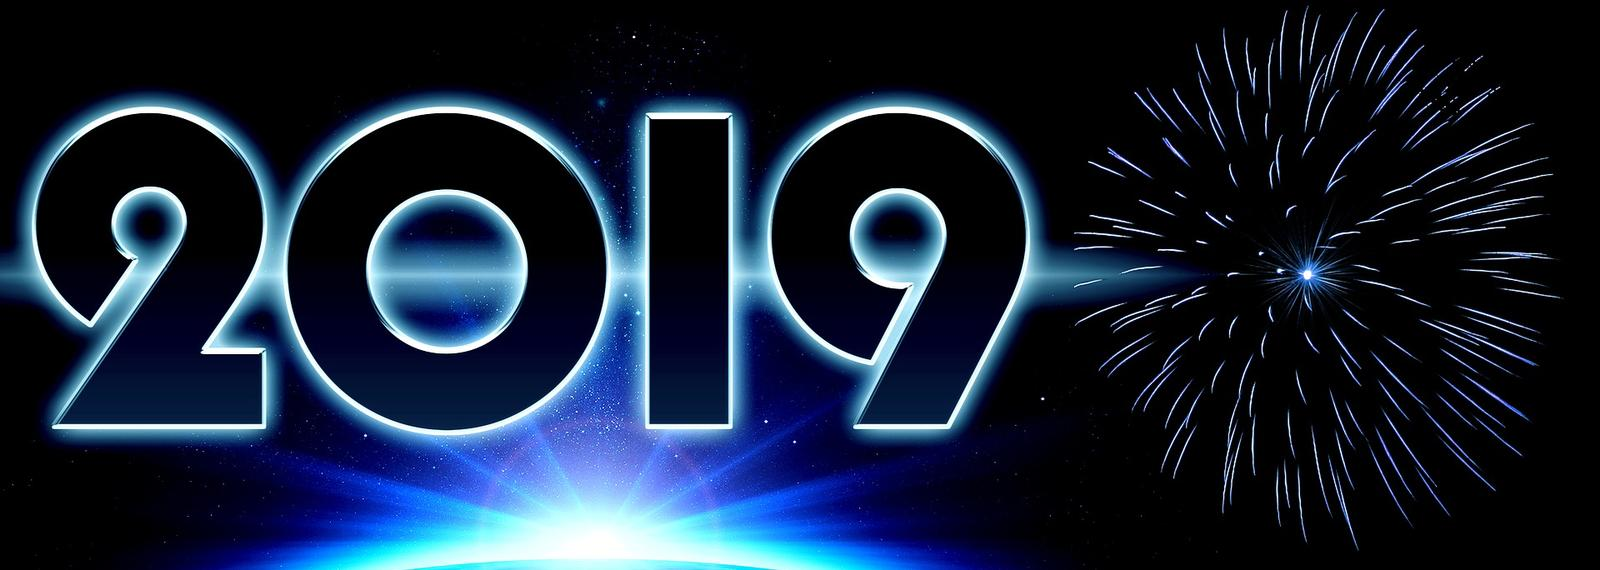 new-years-eve-3700214 1920